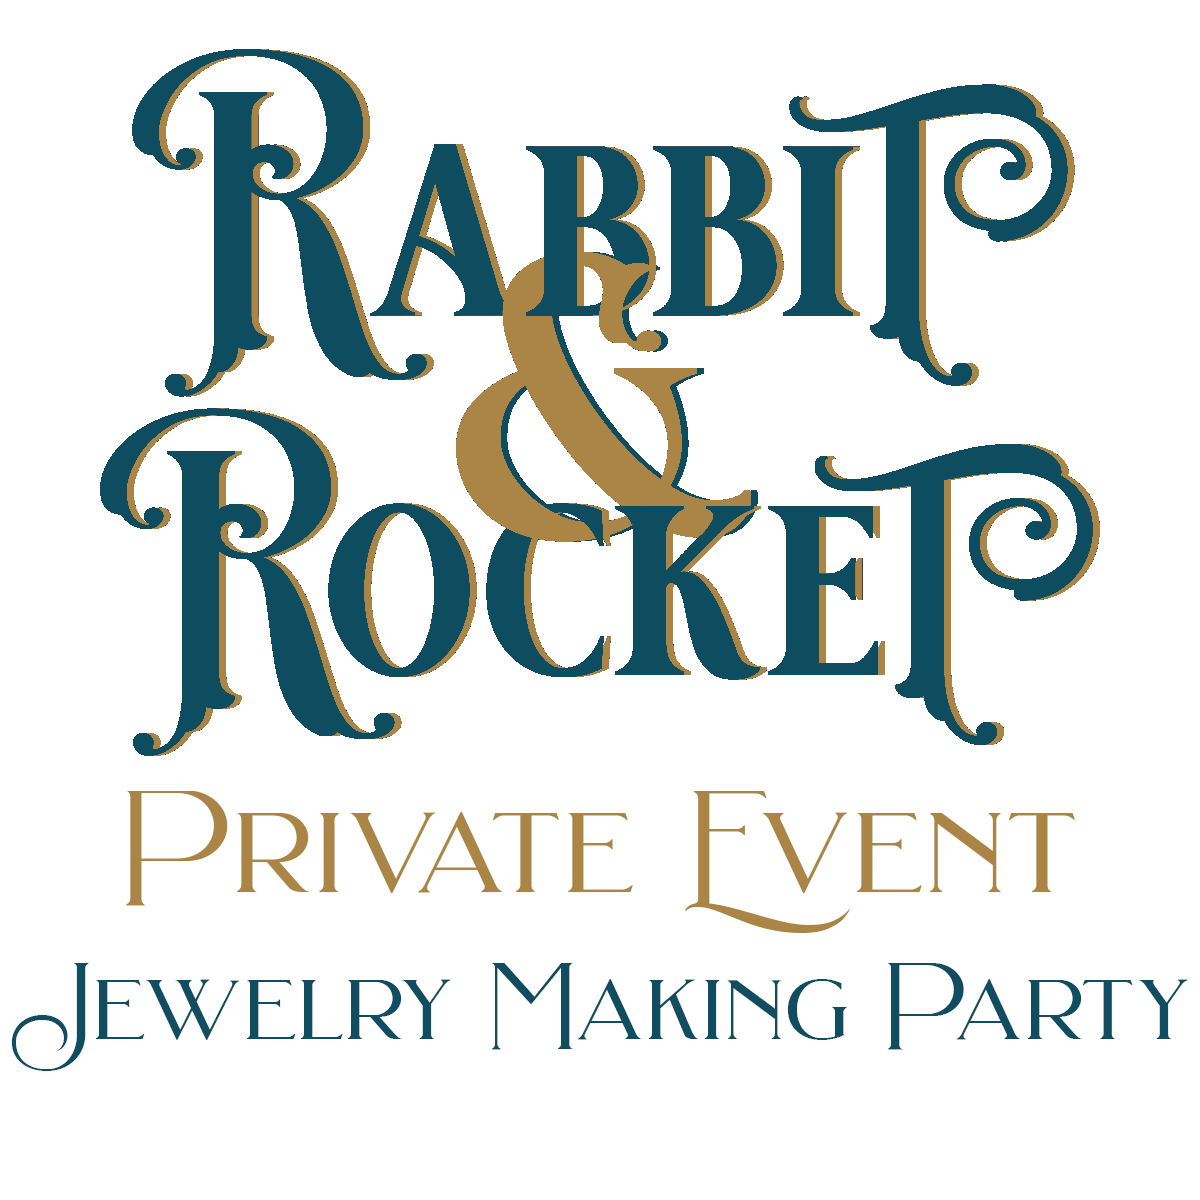 Rabbit and Rocket Private Event Jewelry Making Party